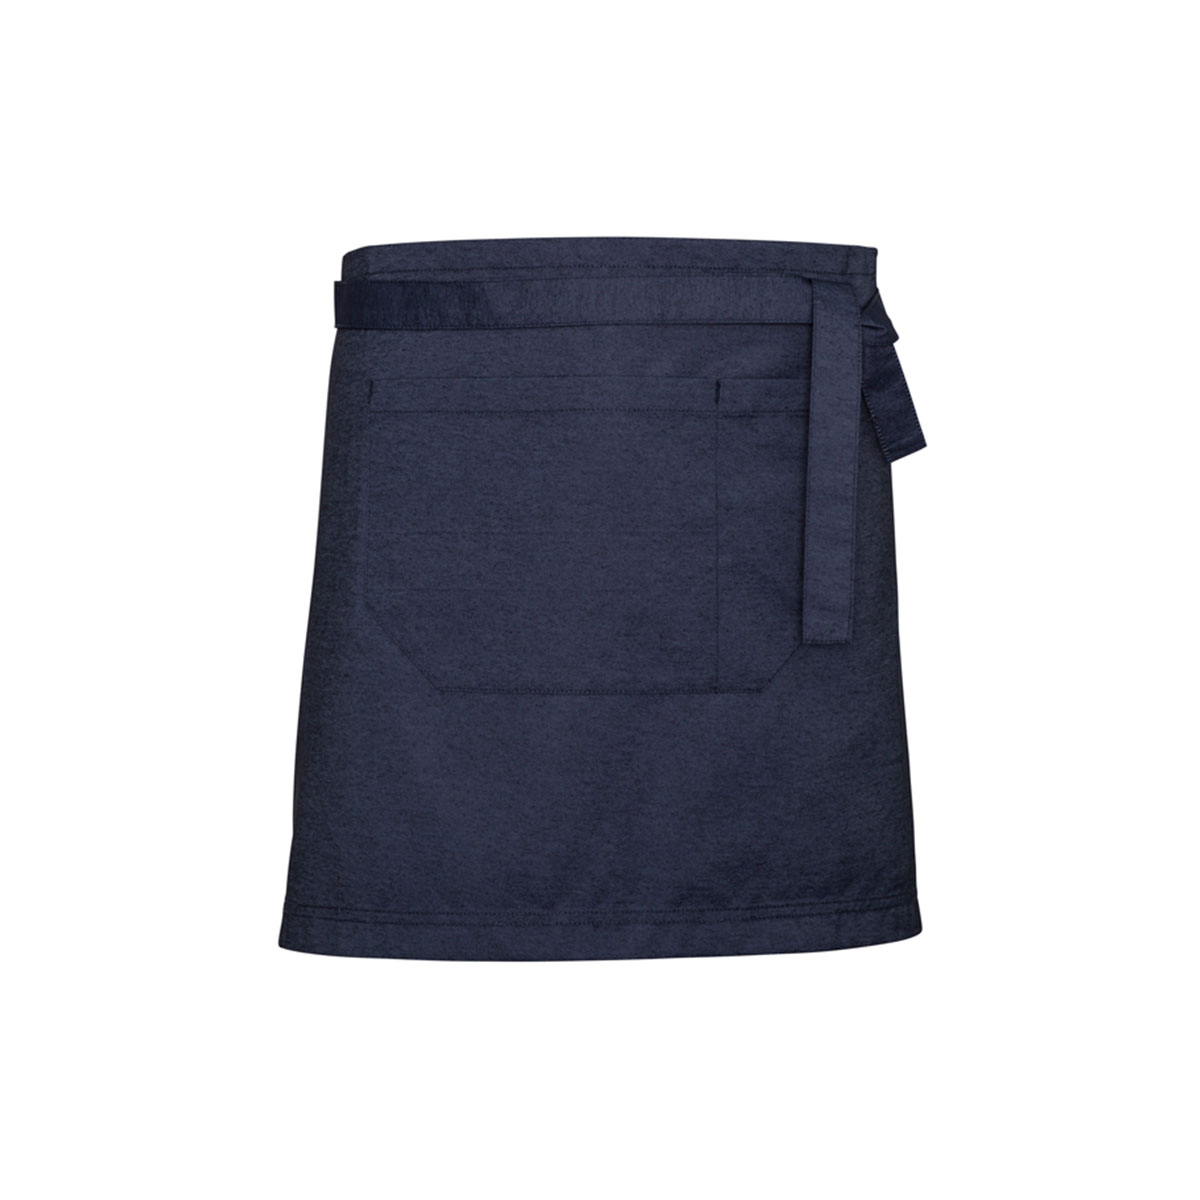 Urban 1/2 Waist Apron-Blue Denim